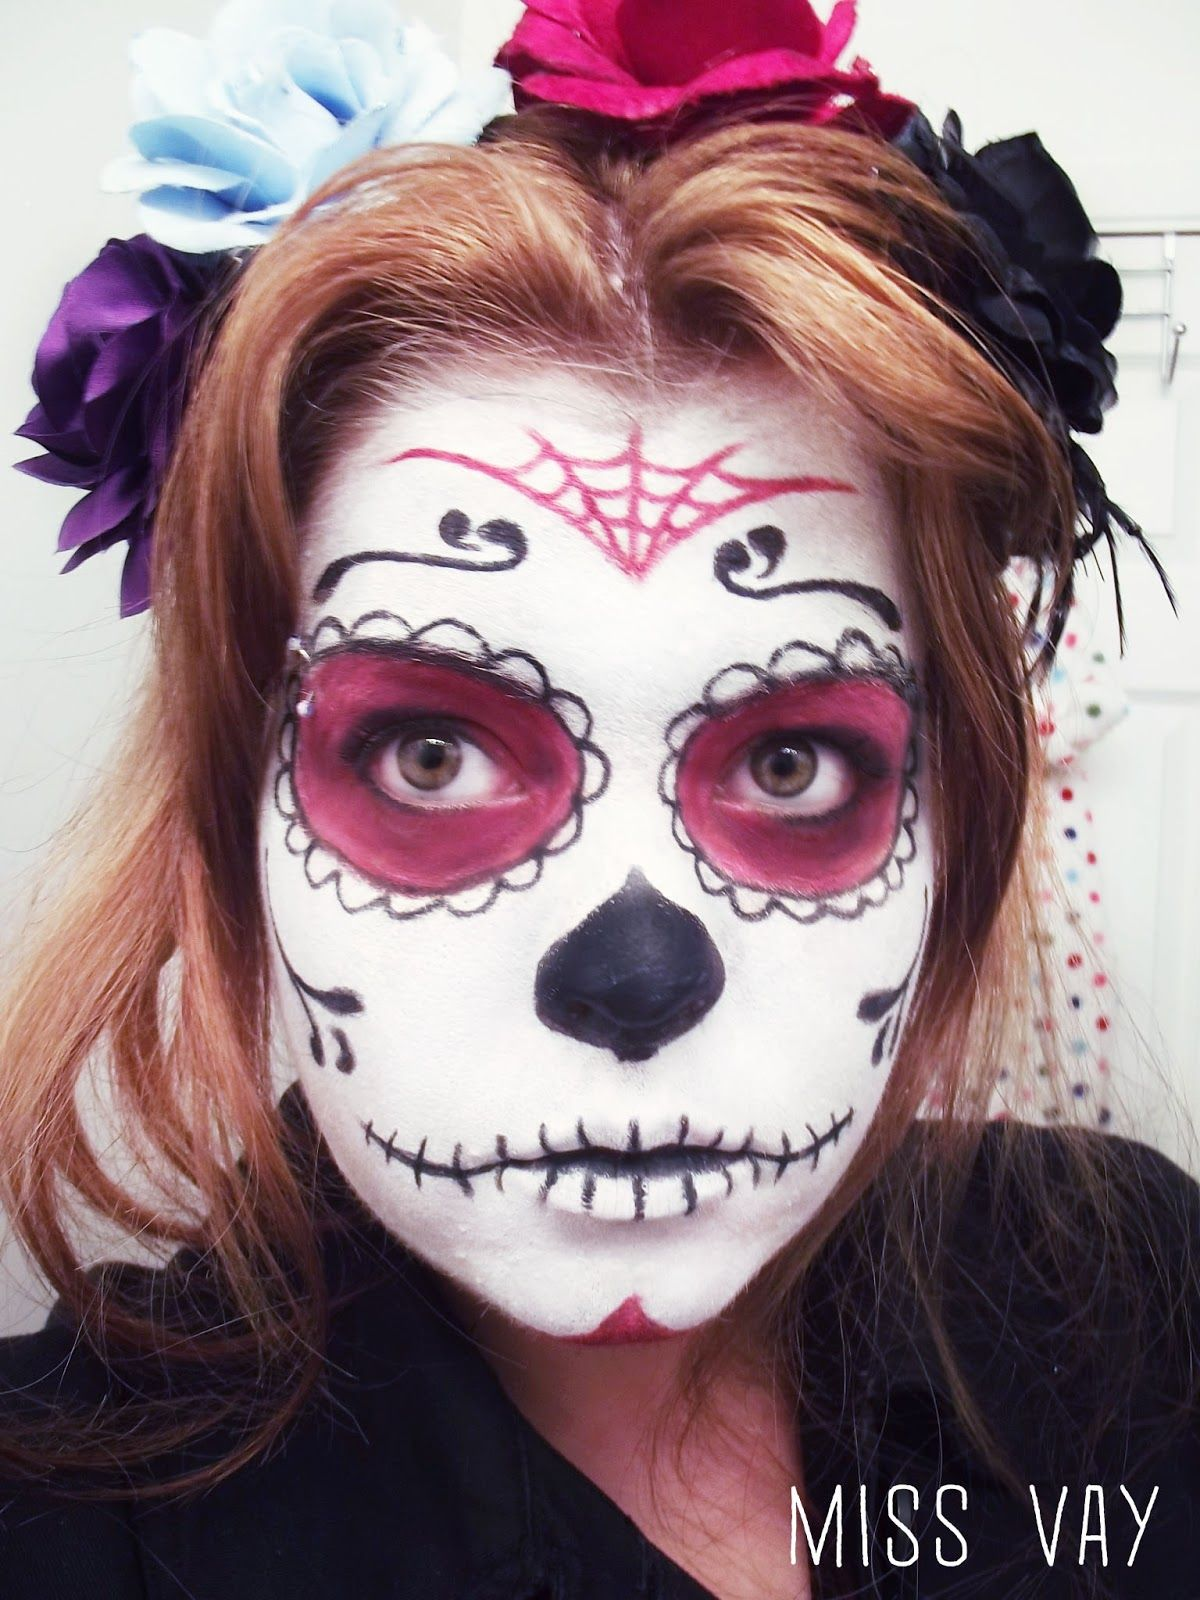 Tete de mort mexicaine maquillage recherche google maquillage mexicain pinterest - Maquillage zombie femme facile ...